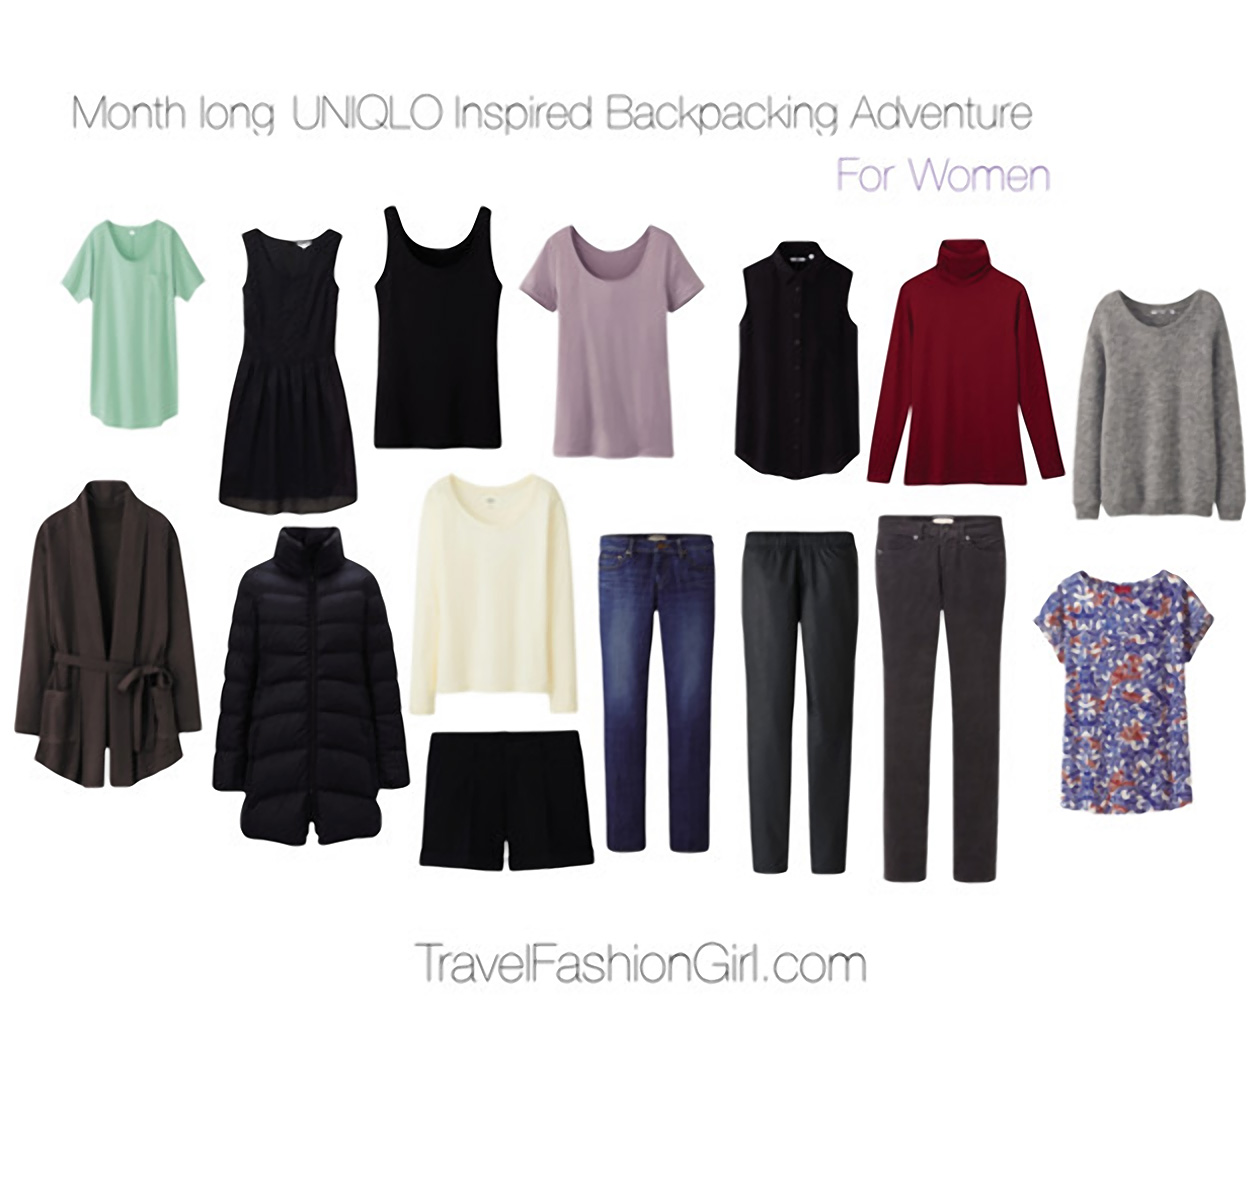 ultralight-warmth-uniqlo-30-day-packing-list